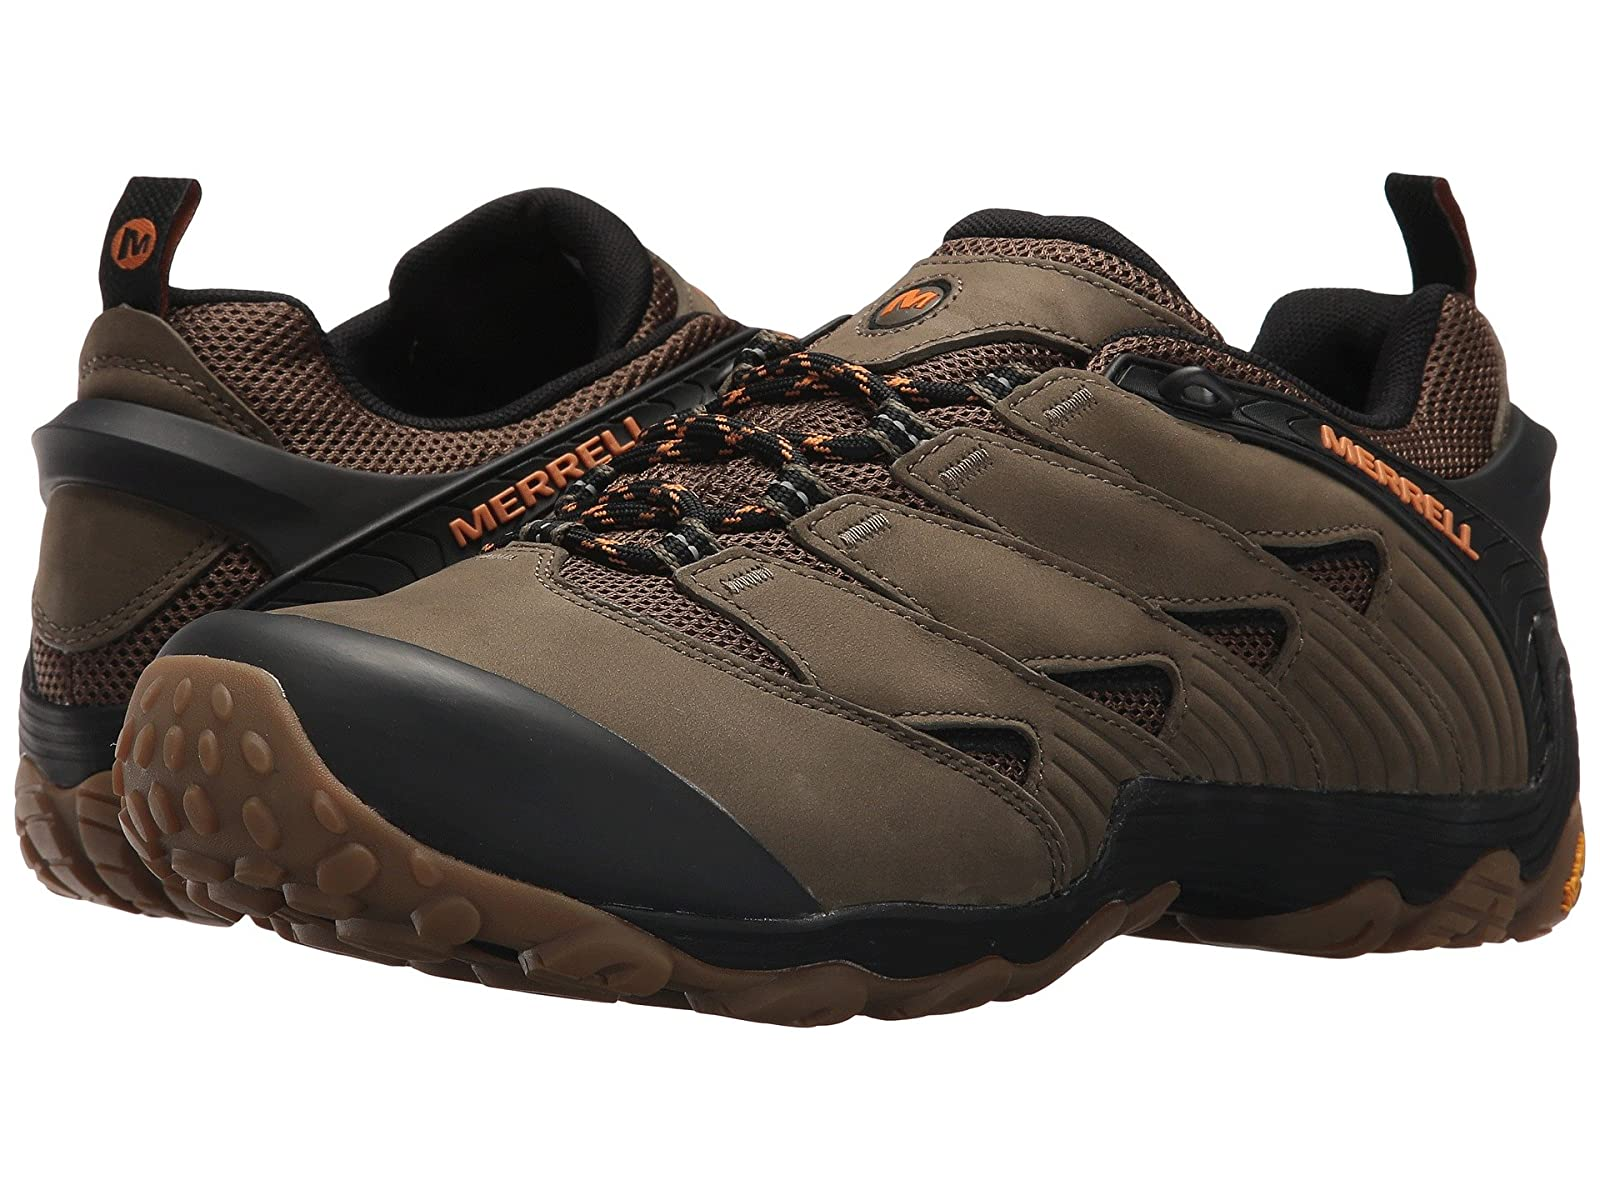 Merrell Chameleon 7Atmospheric grades have affordable shoes